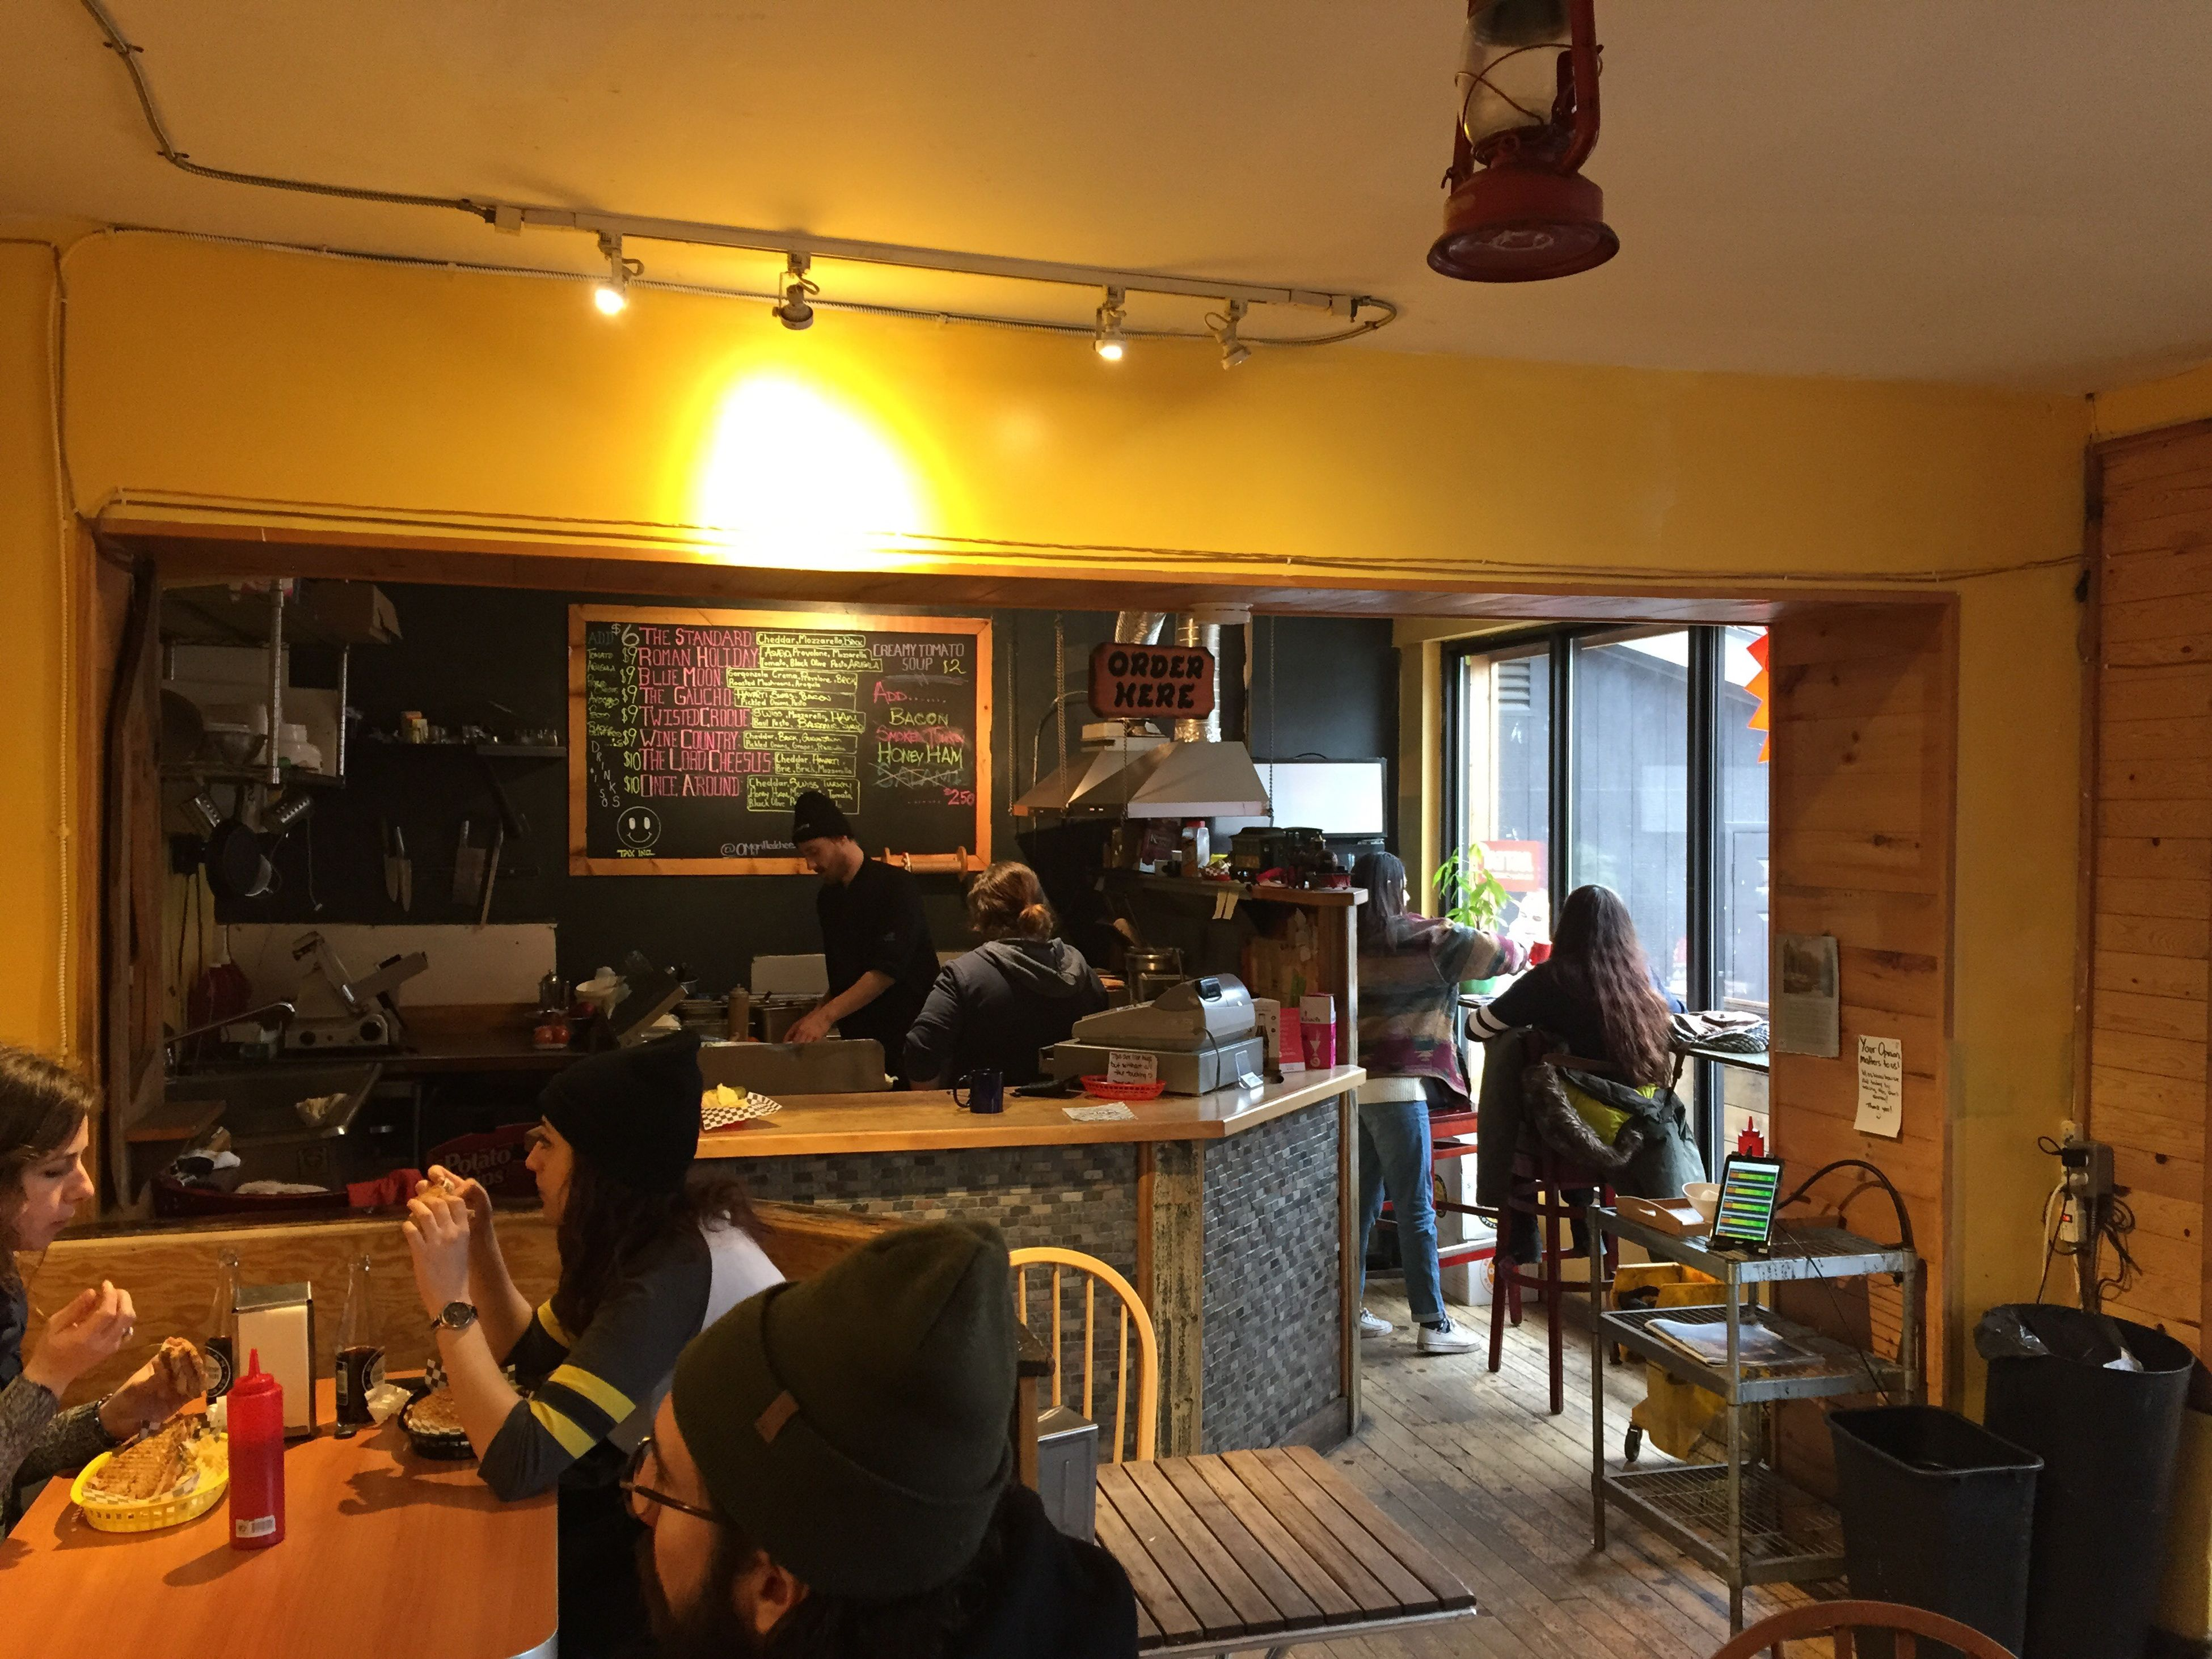 table, indoors, men, food and drink, restaurant, chair, lifestyles, architecture, person, built structure, leisure activity, food, arrangement, retail, illuminated, large group of objects, cafe, variation